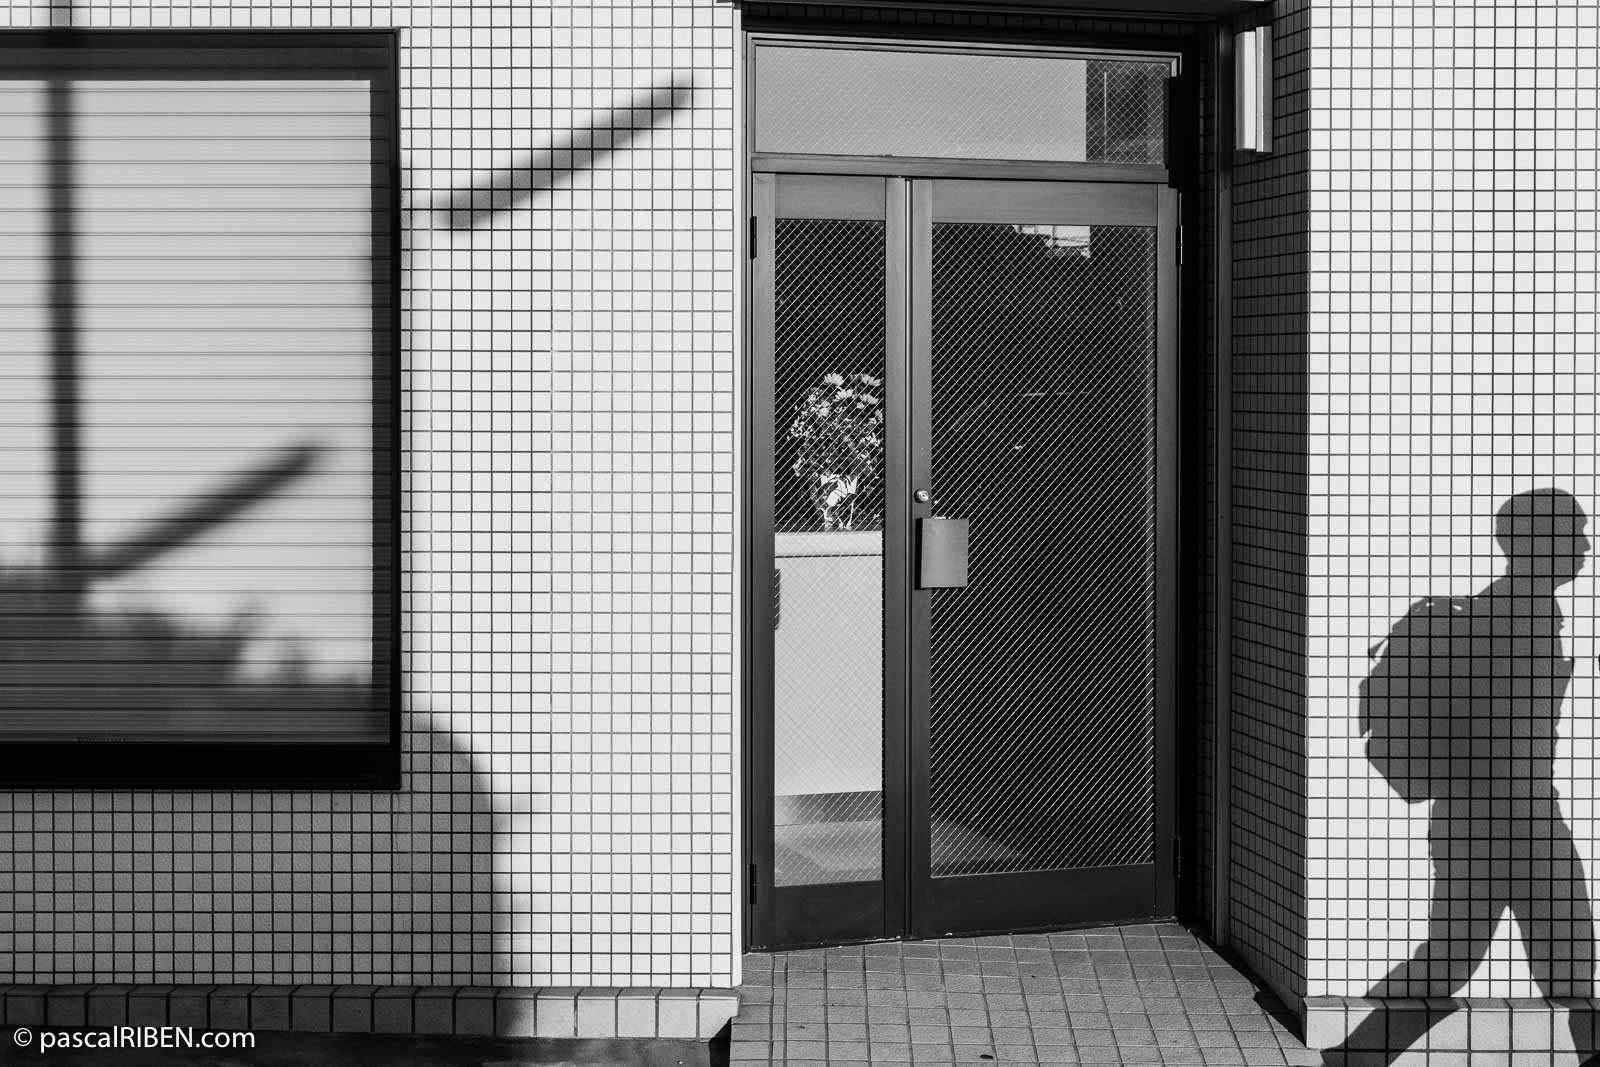 Shadow in Higashiosaka near Tokuan Station, Japan, 2019